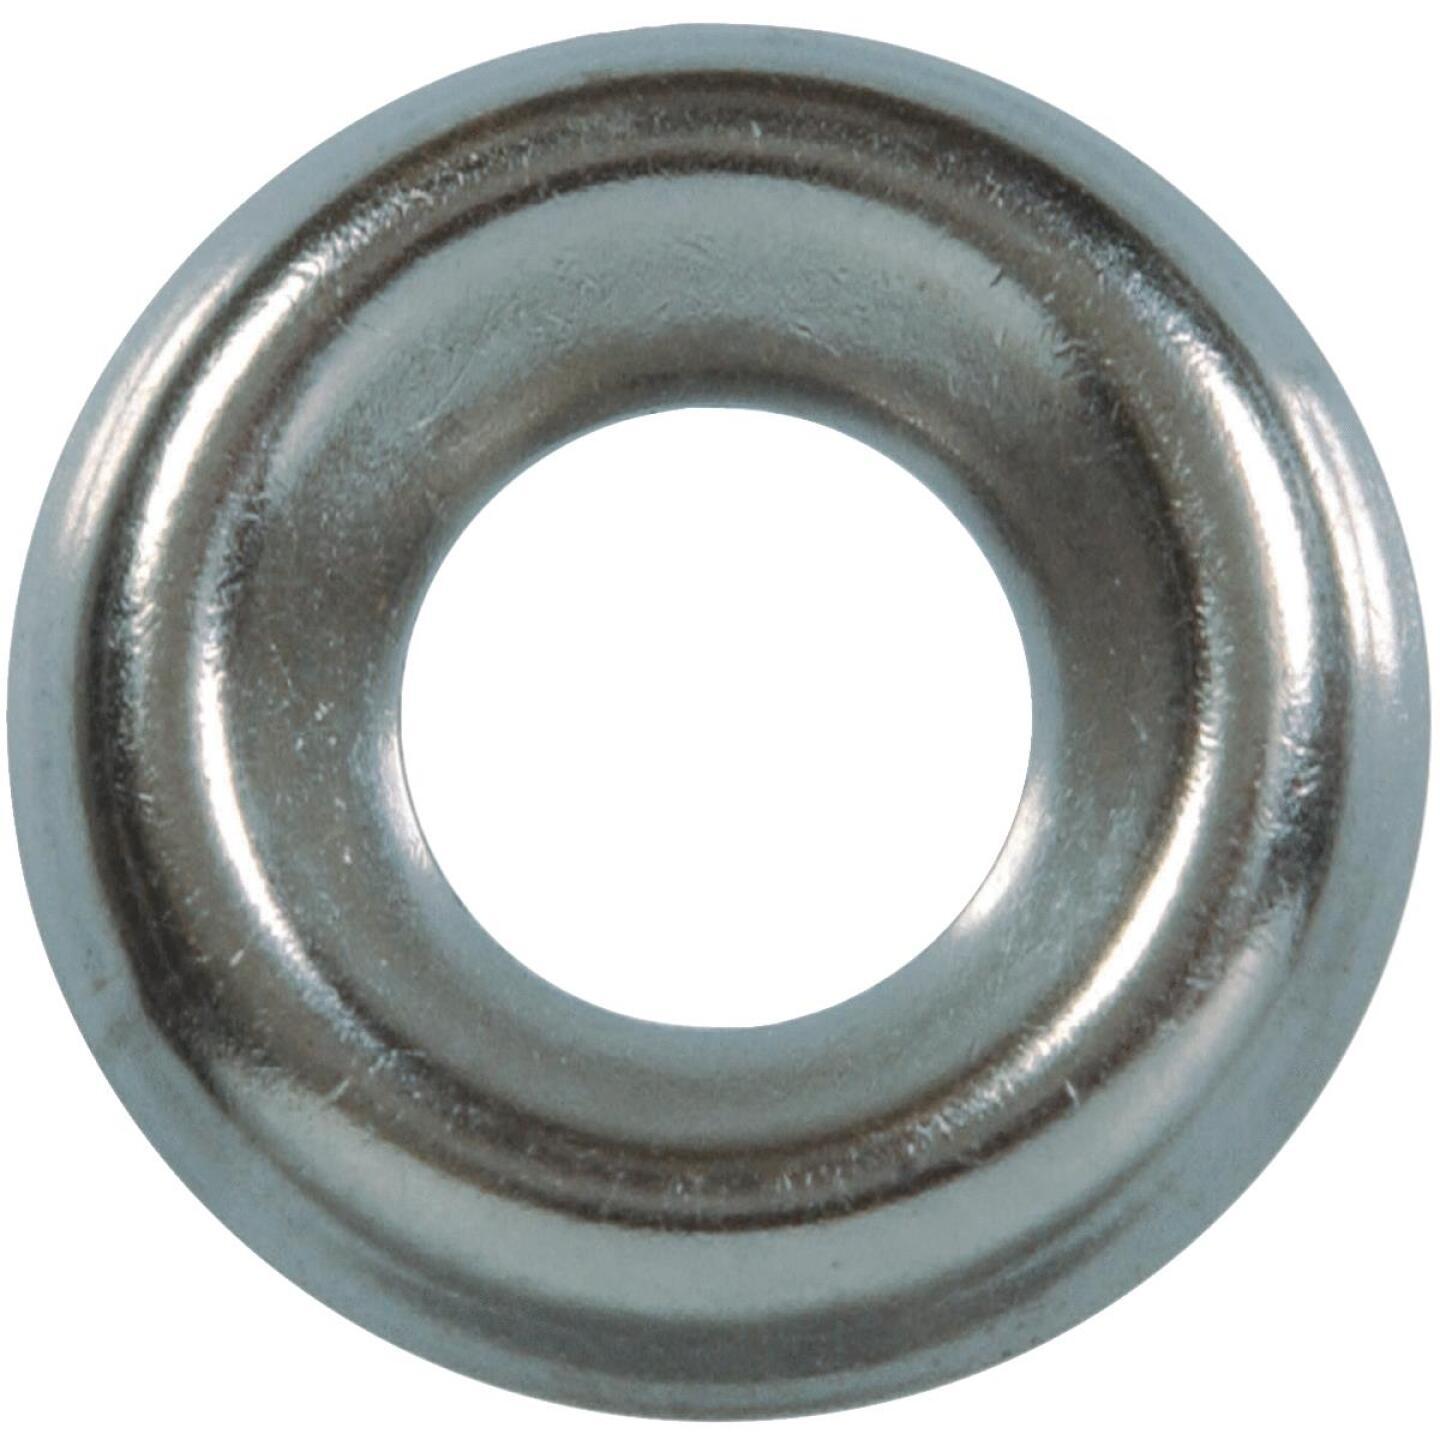 Hillman #8 Steel Nickel Plated Finishing Washer (10 Ct.) Image 1